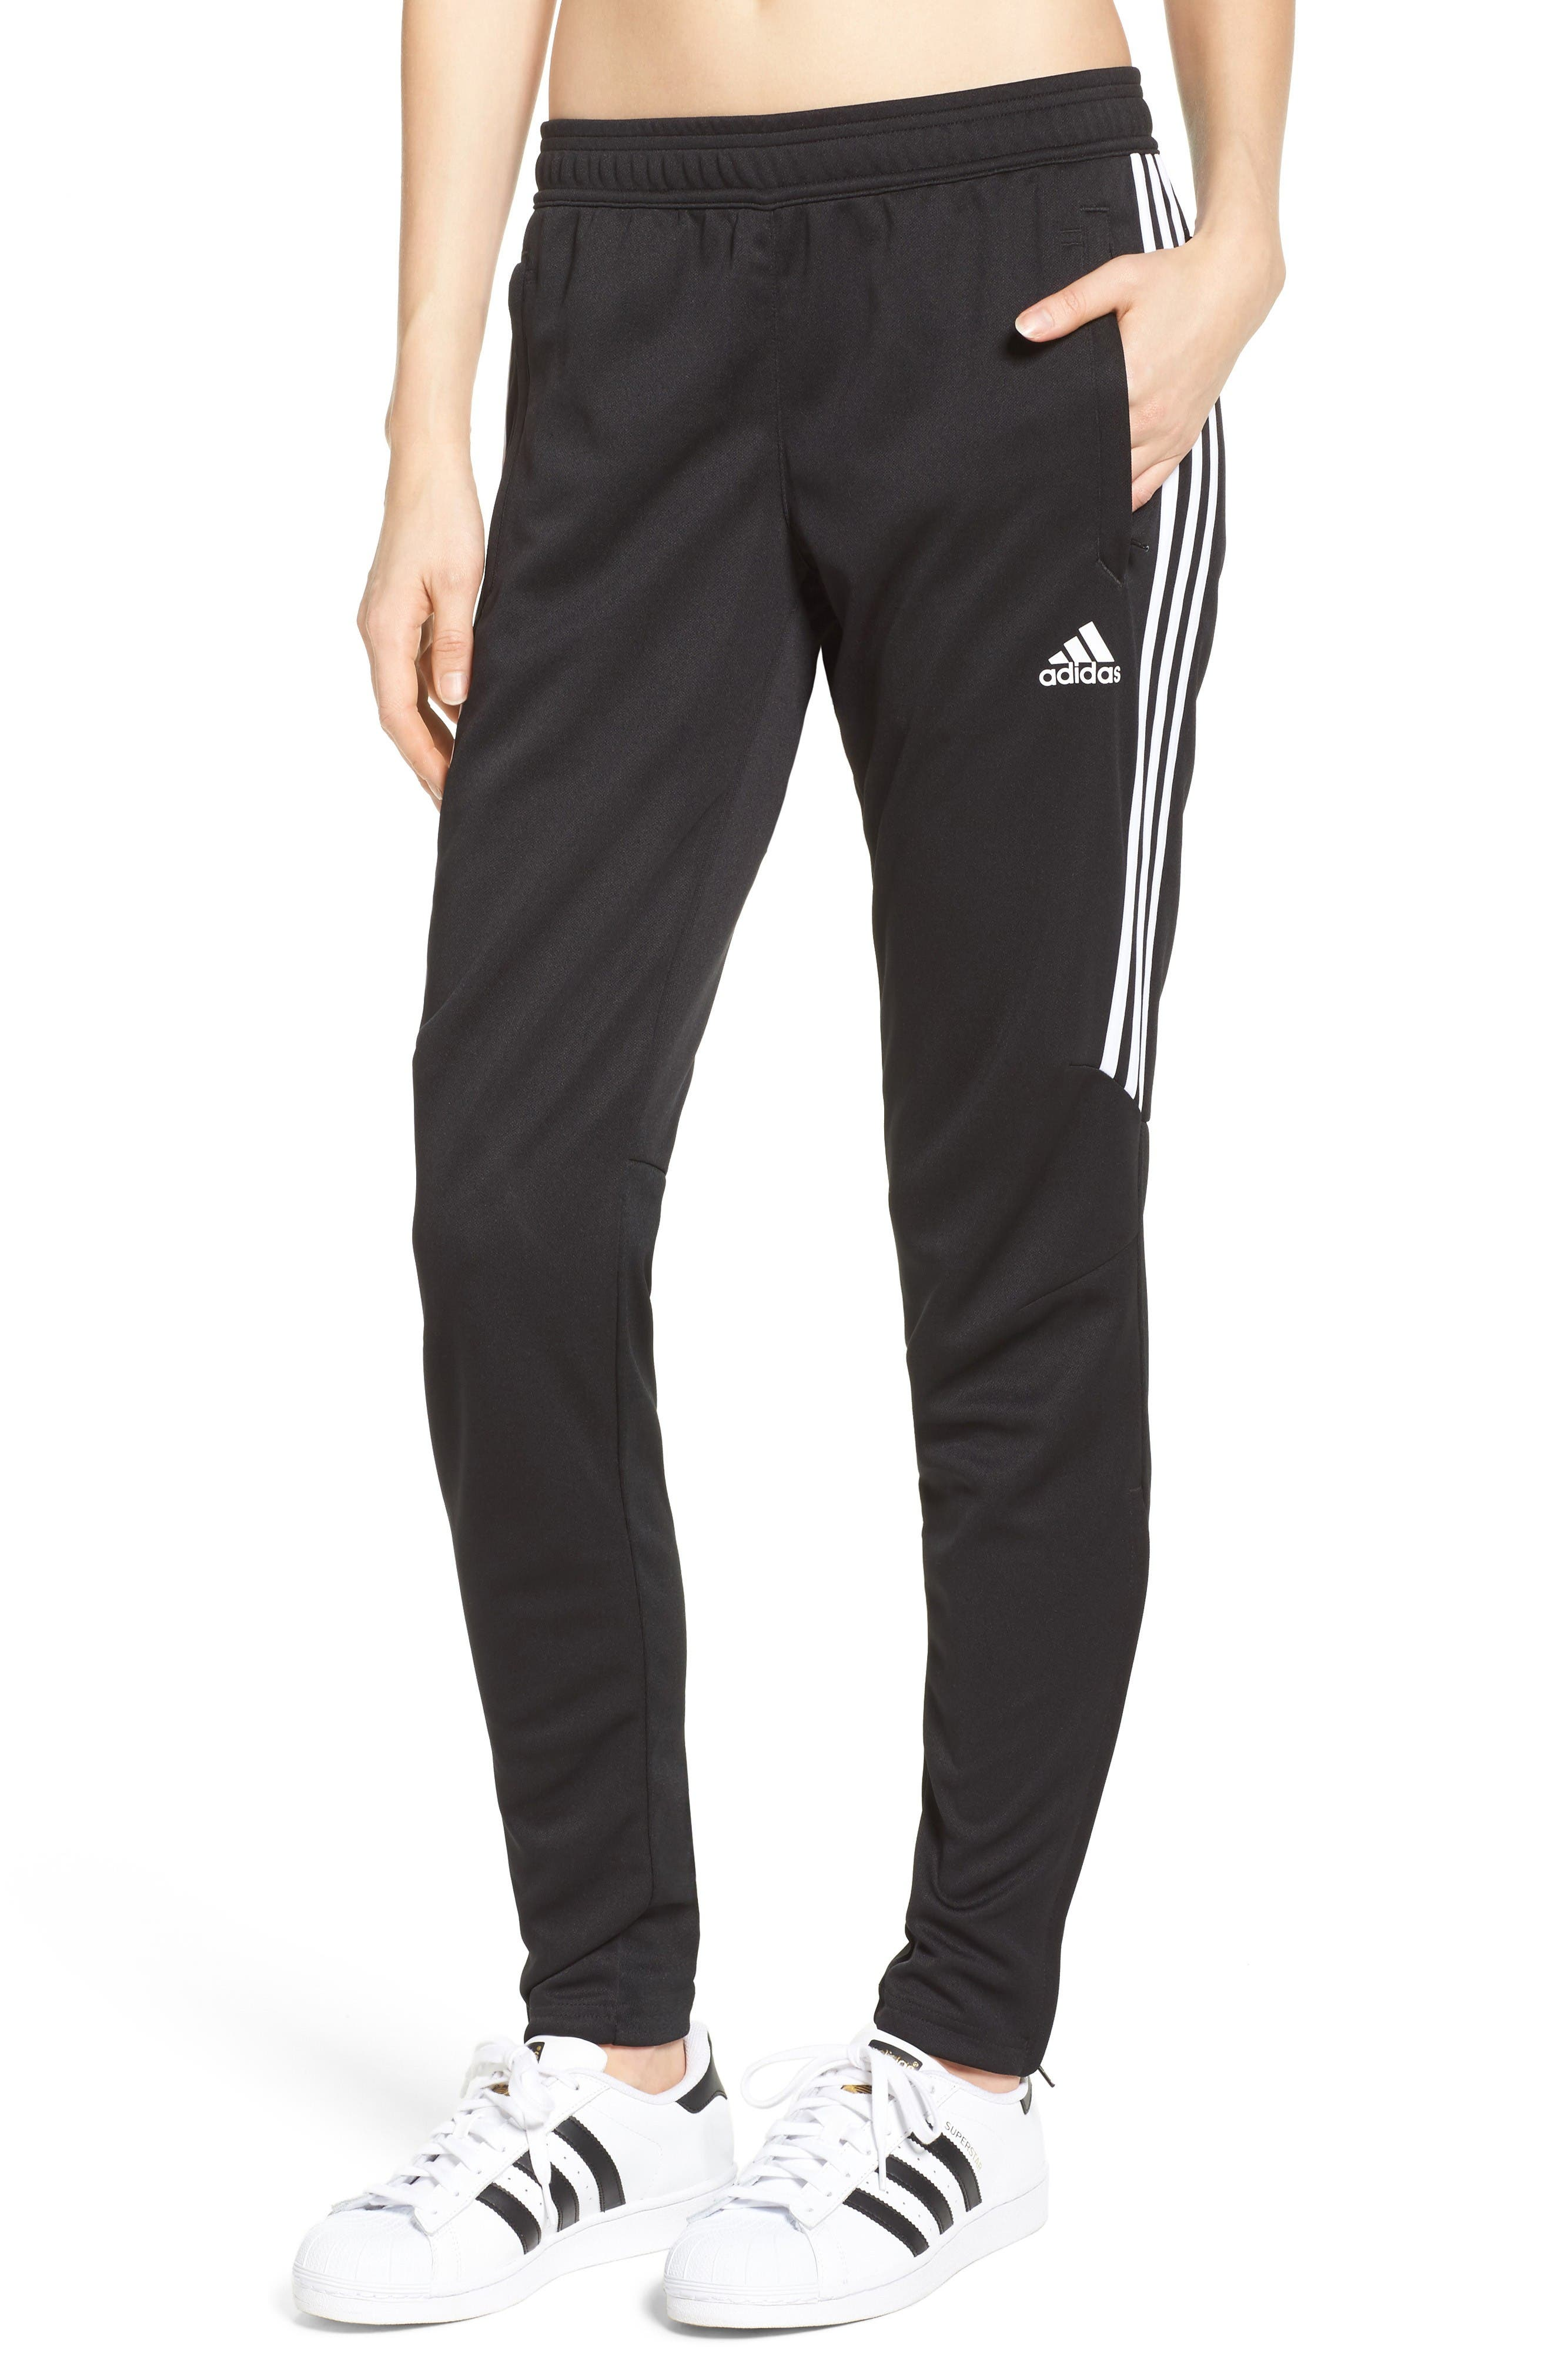 Lastest Adidas Originals California Tracksuit Bottoms For Women U60v6088 | Www.sanilodge.co.uk